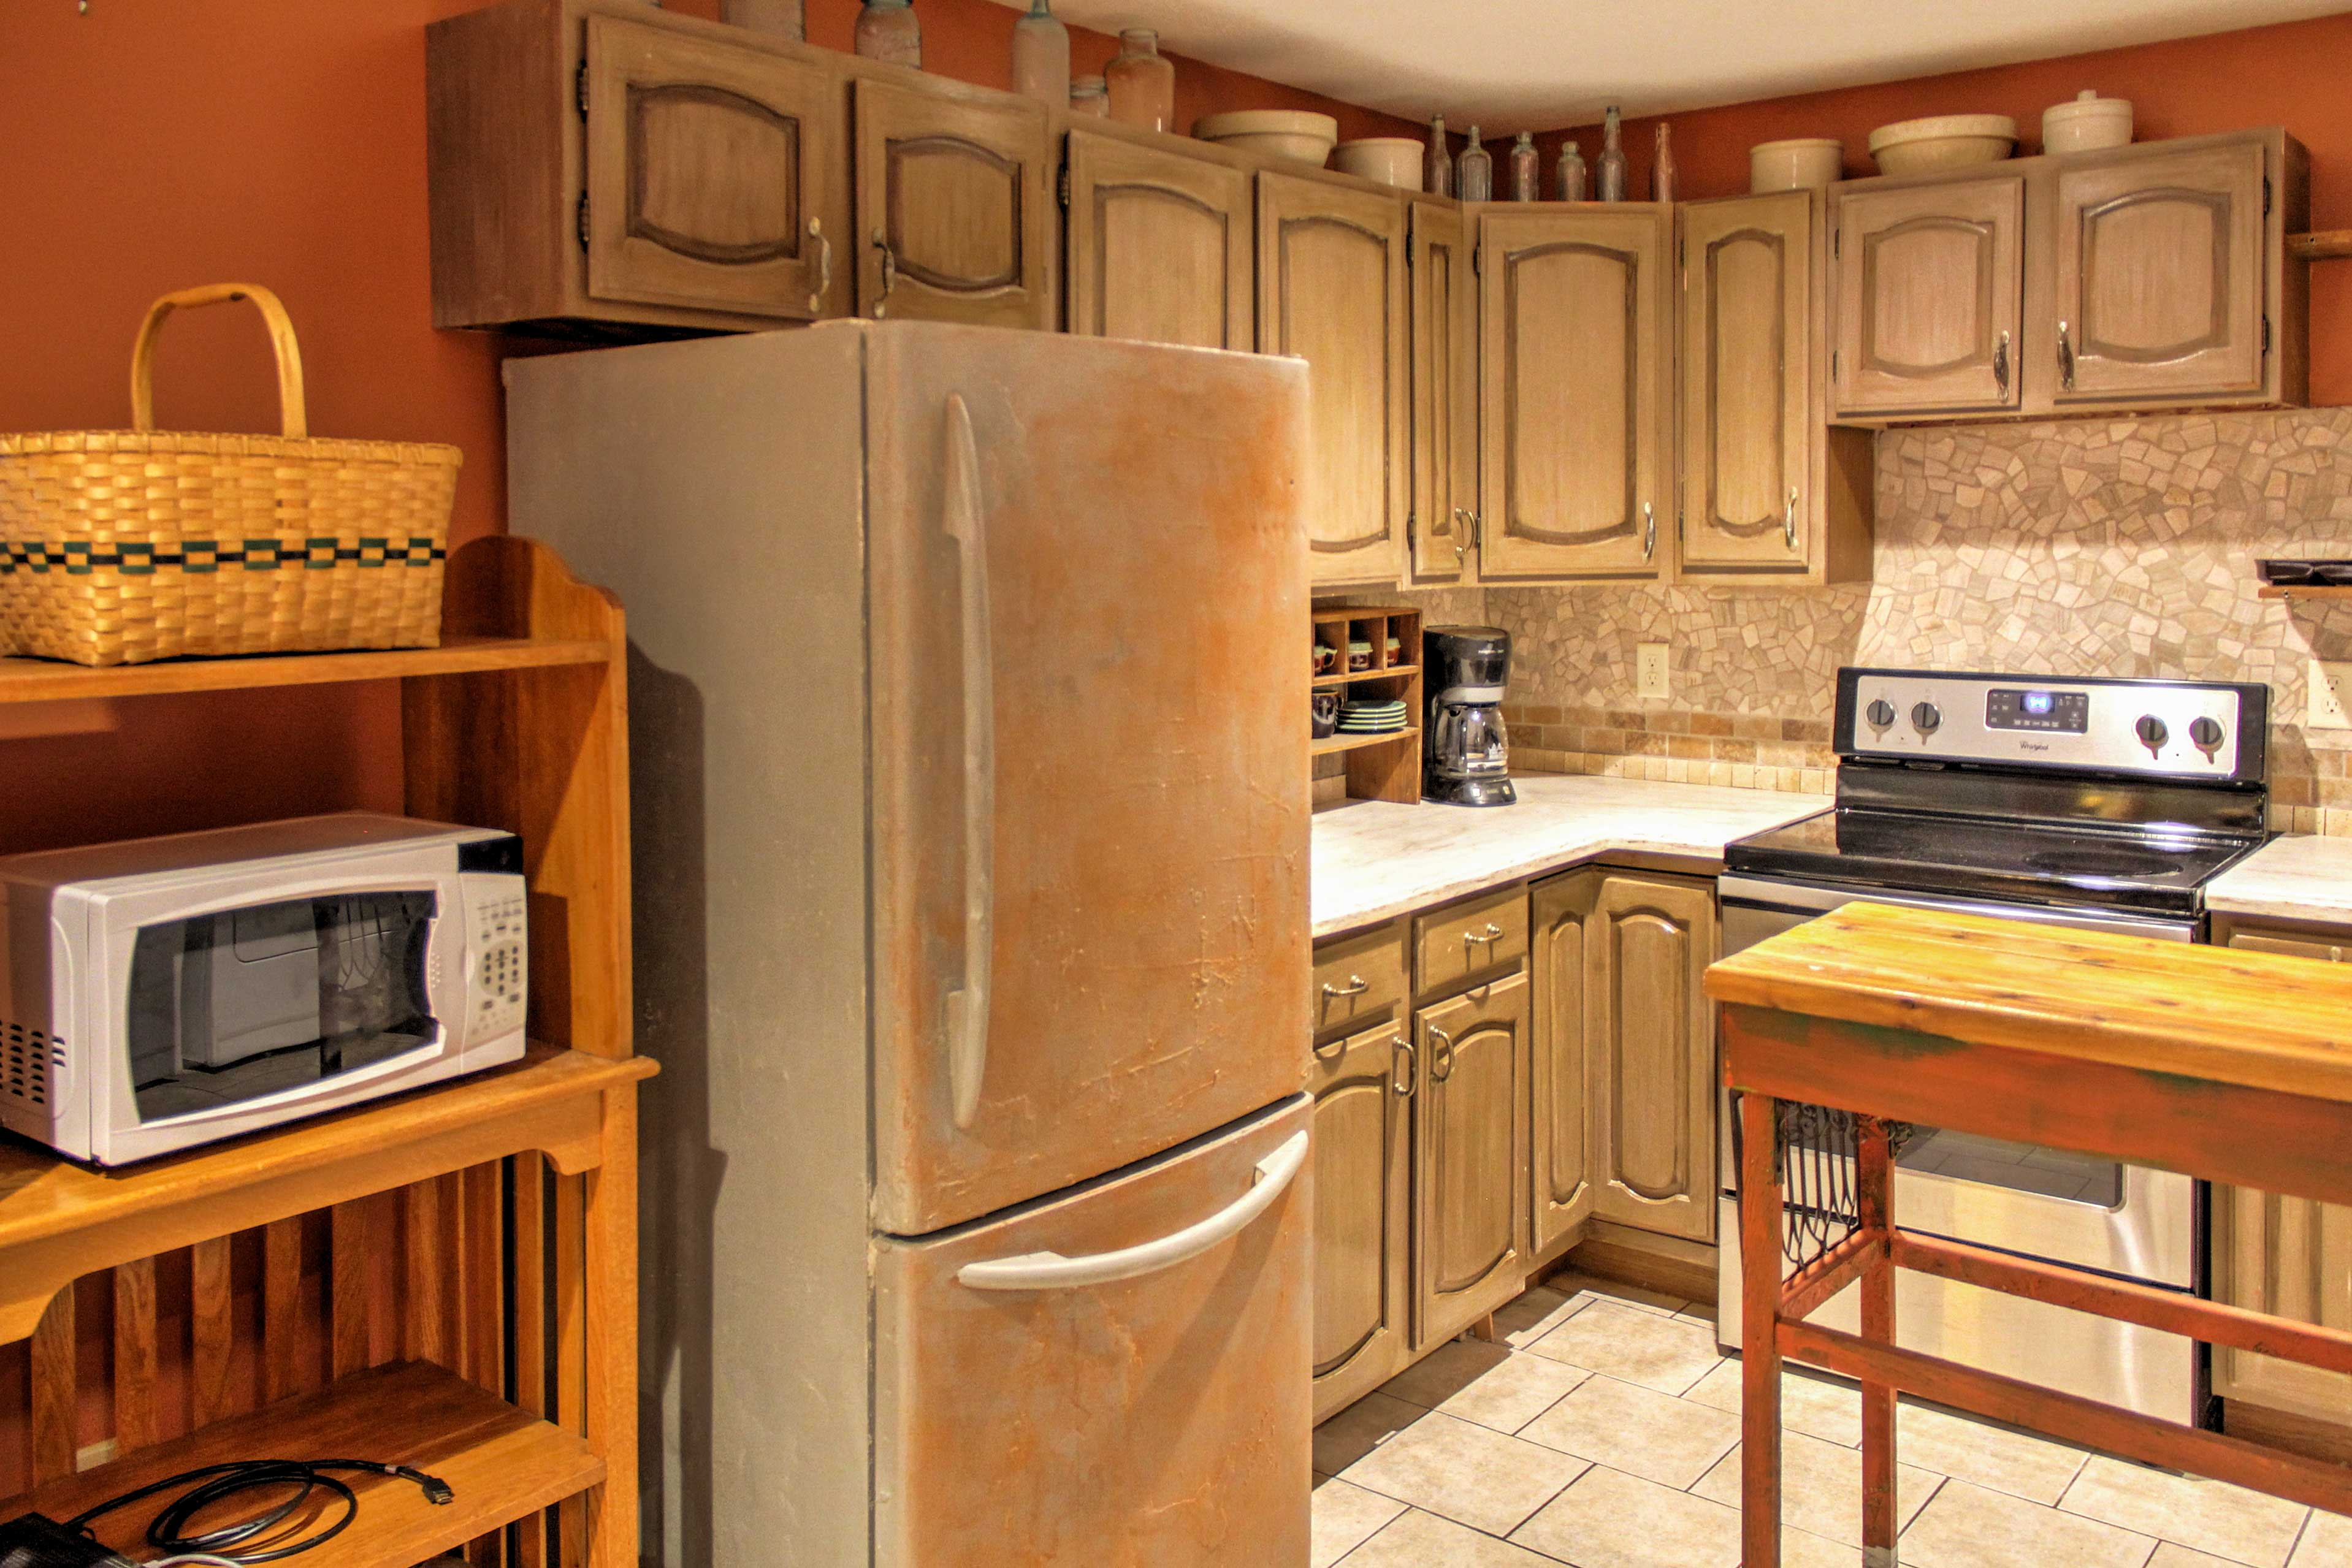 The kitchen includes all your essential appliances and a high-top table.